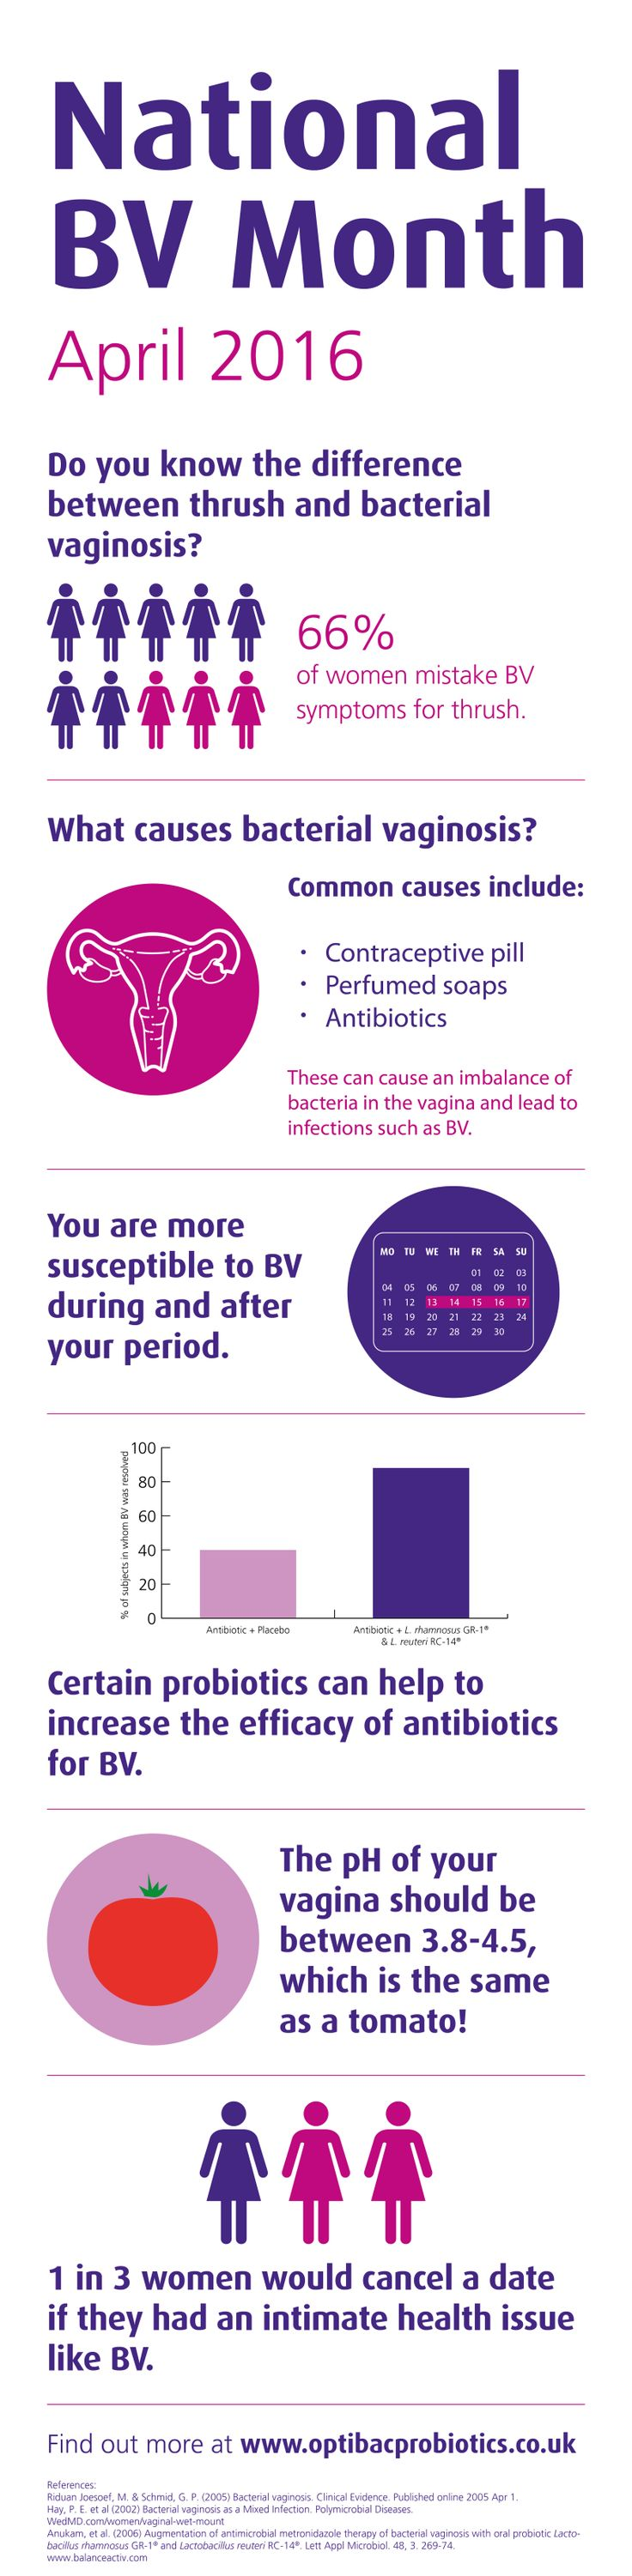 April marks National BV month, a campaign to raise awareness about bacterial vaginosis - which affects a WHOPPING 1 in 3 women in the UK!